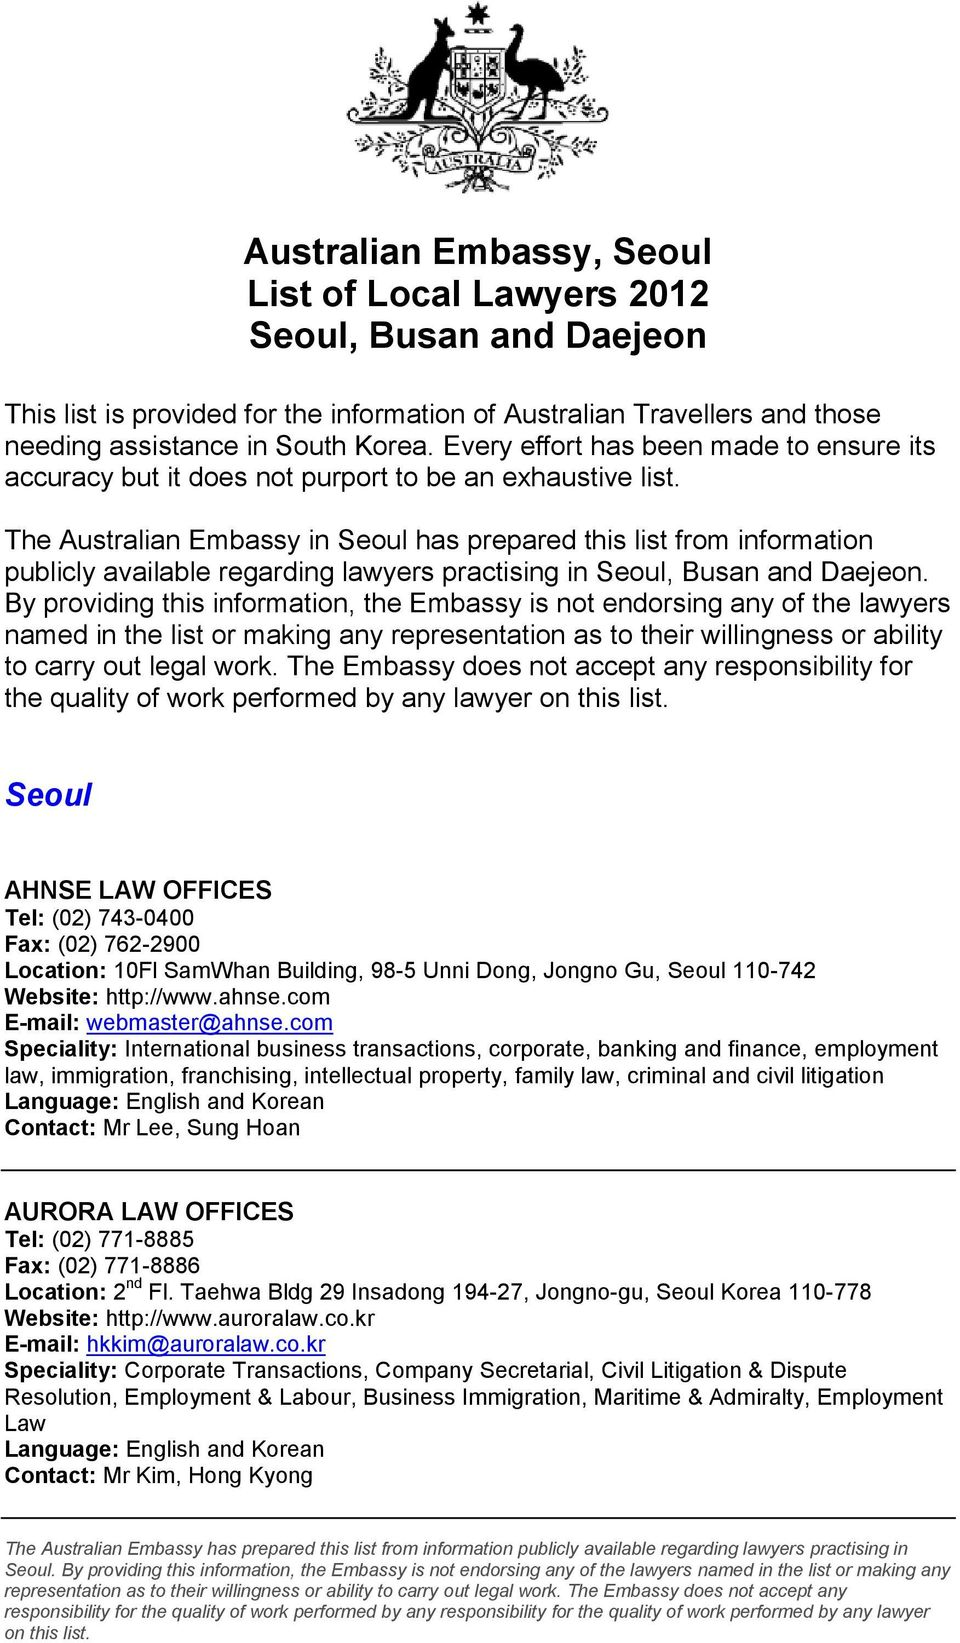 The Australian Embassy in Seoul has prepared this list from information publicly available regarding lawyers practising in Seoul, Busan and Daejeon.